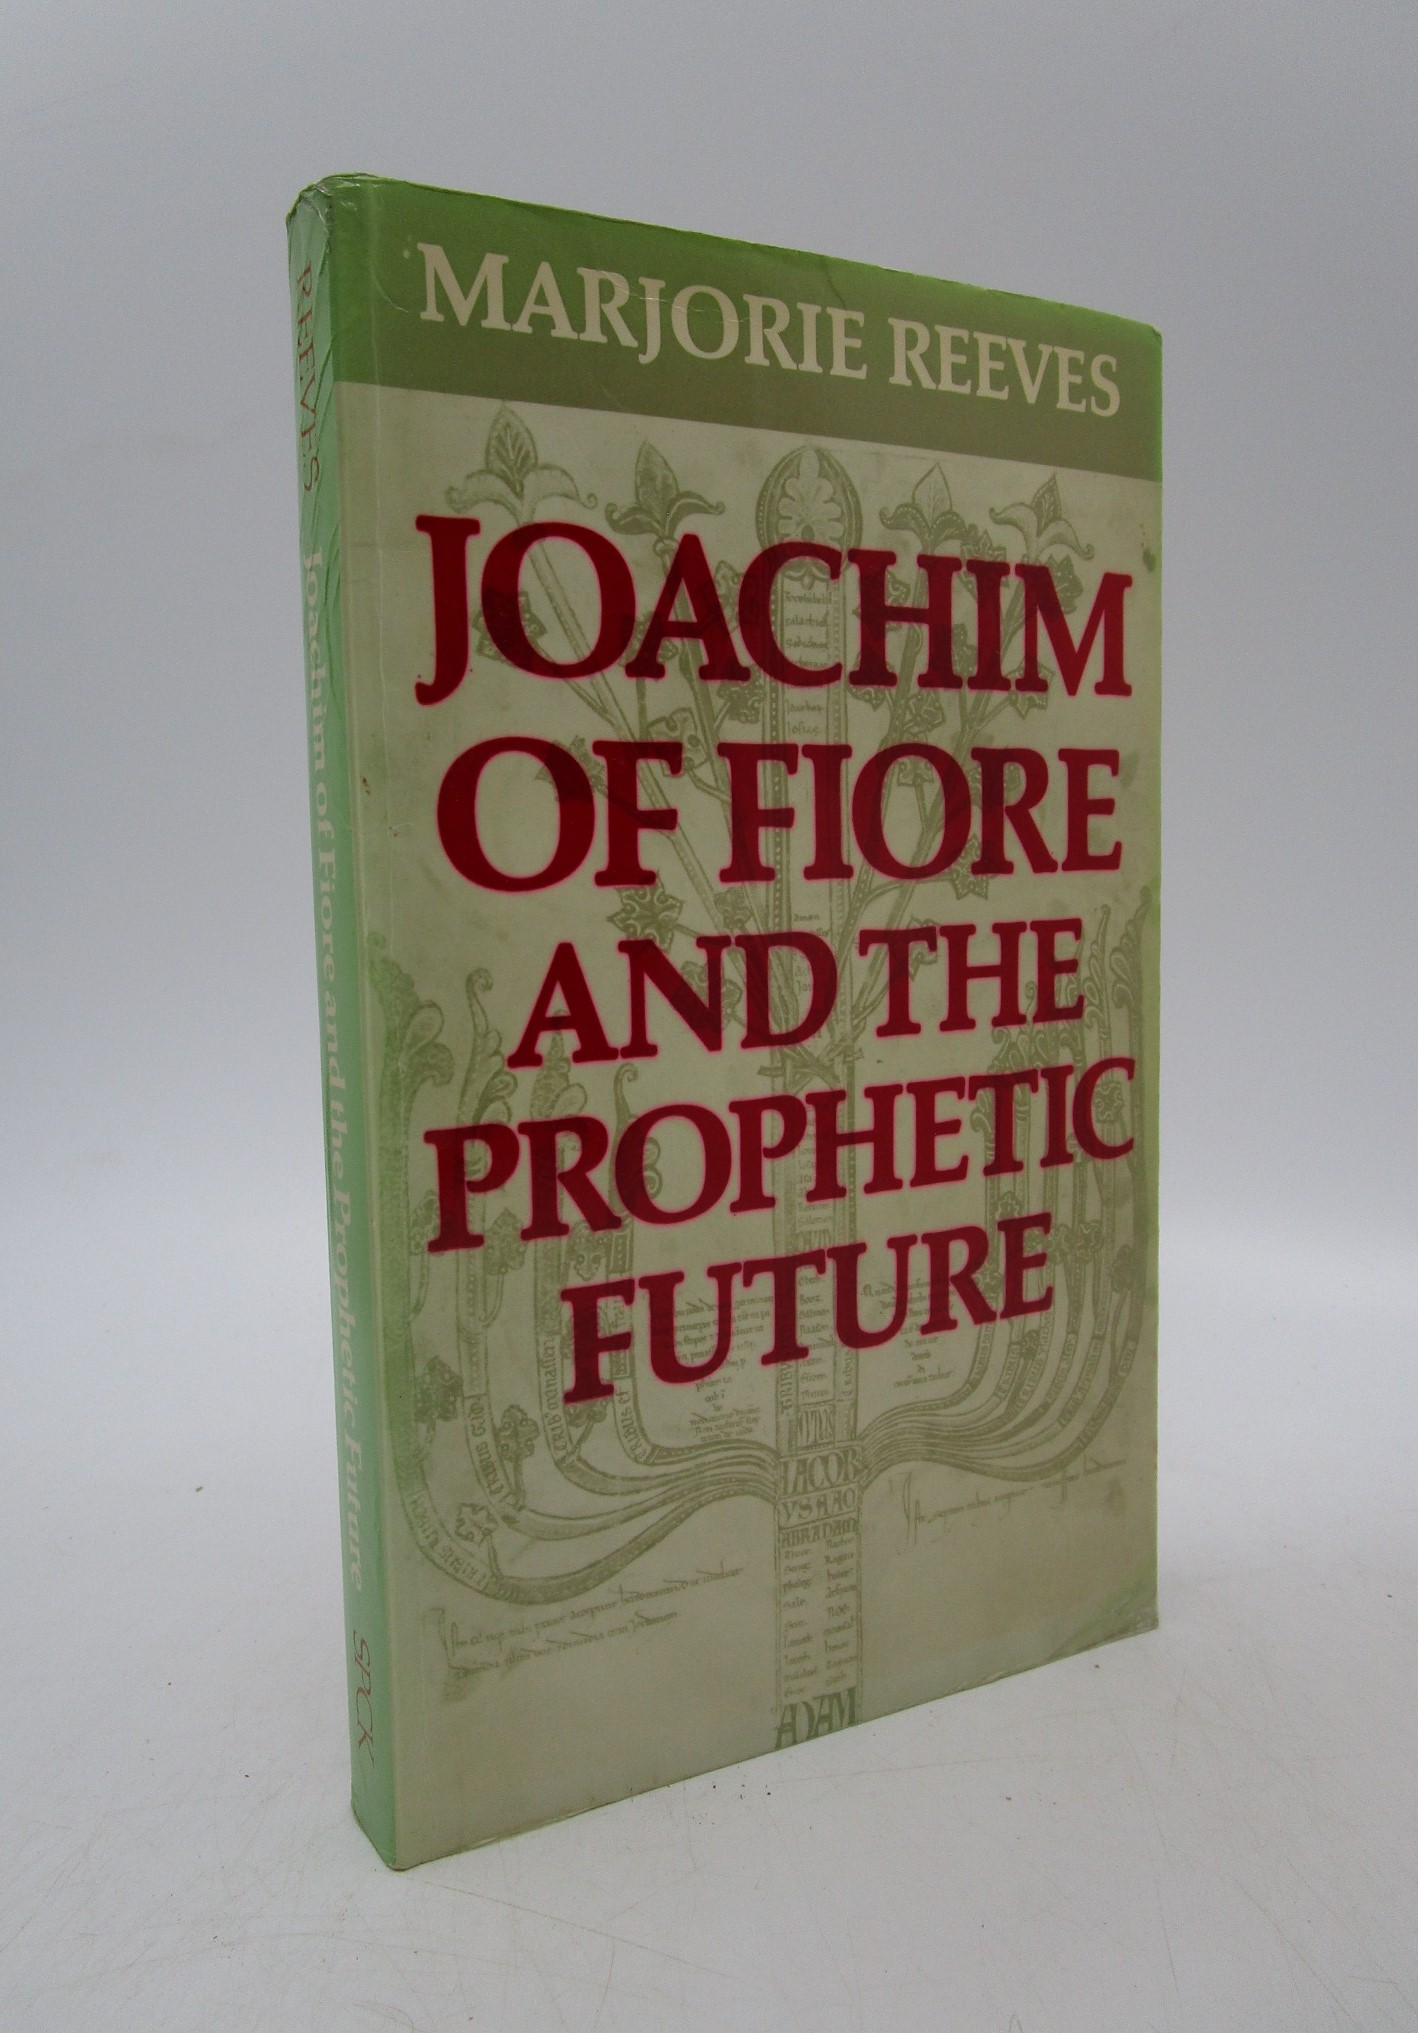 Image for Joachim of Fiore and the Prophetic Future (signed)